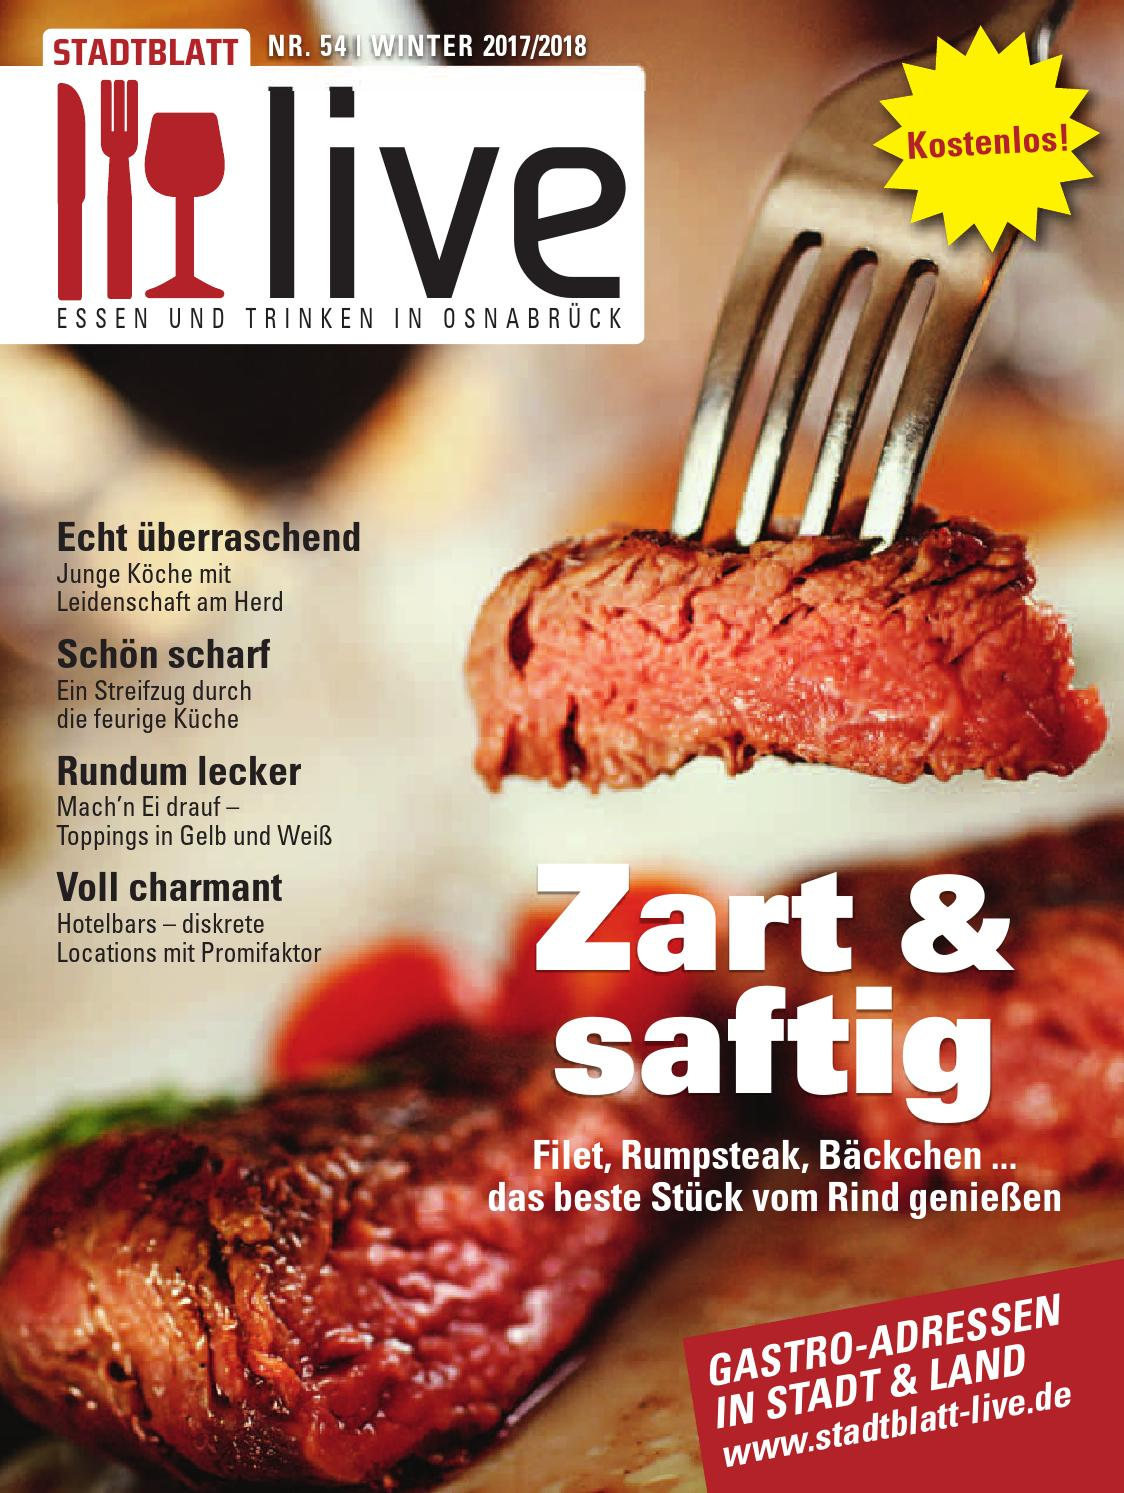 STADTBLATT live Winter 2017/2018 by bvw werbeagentur - issuu